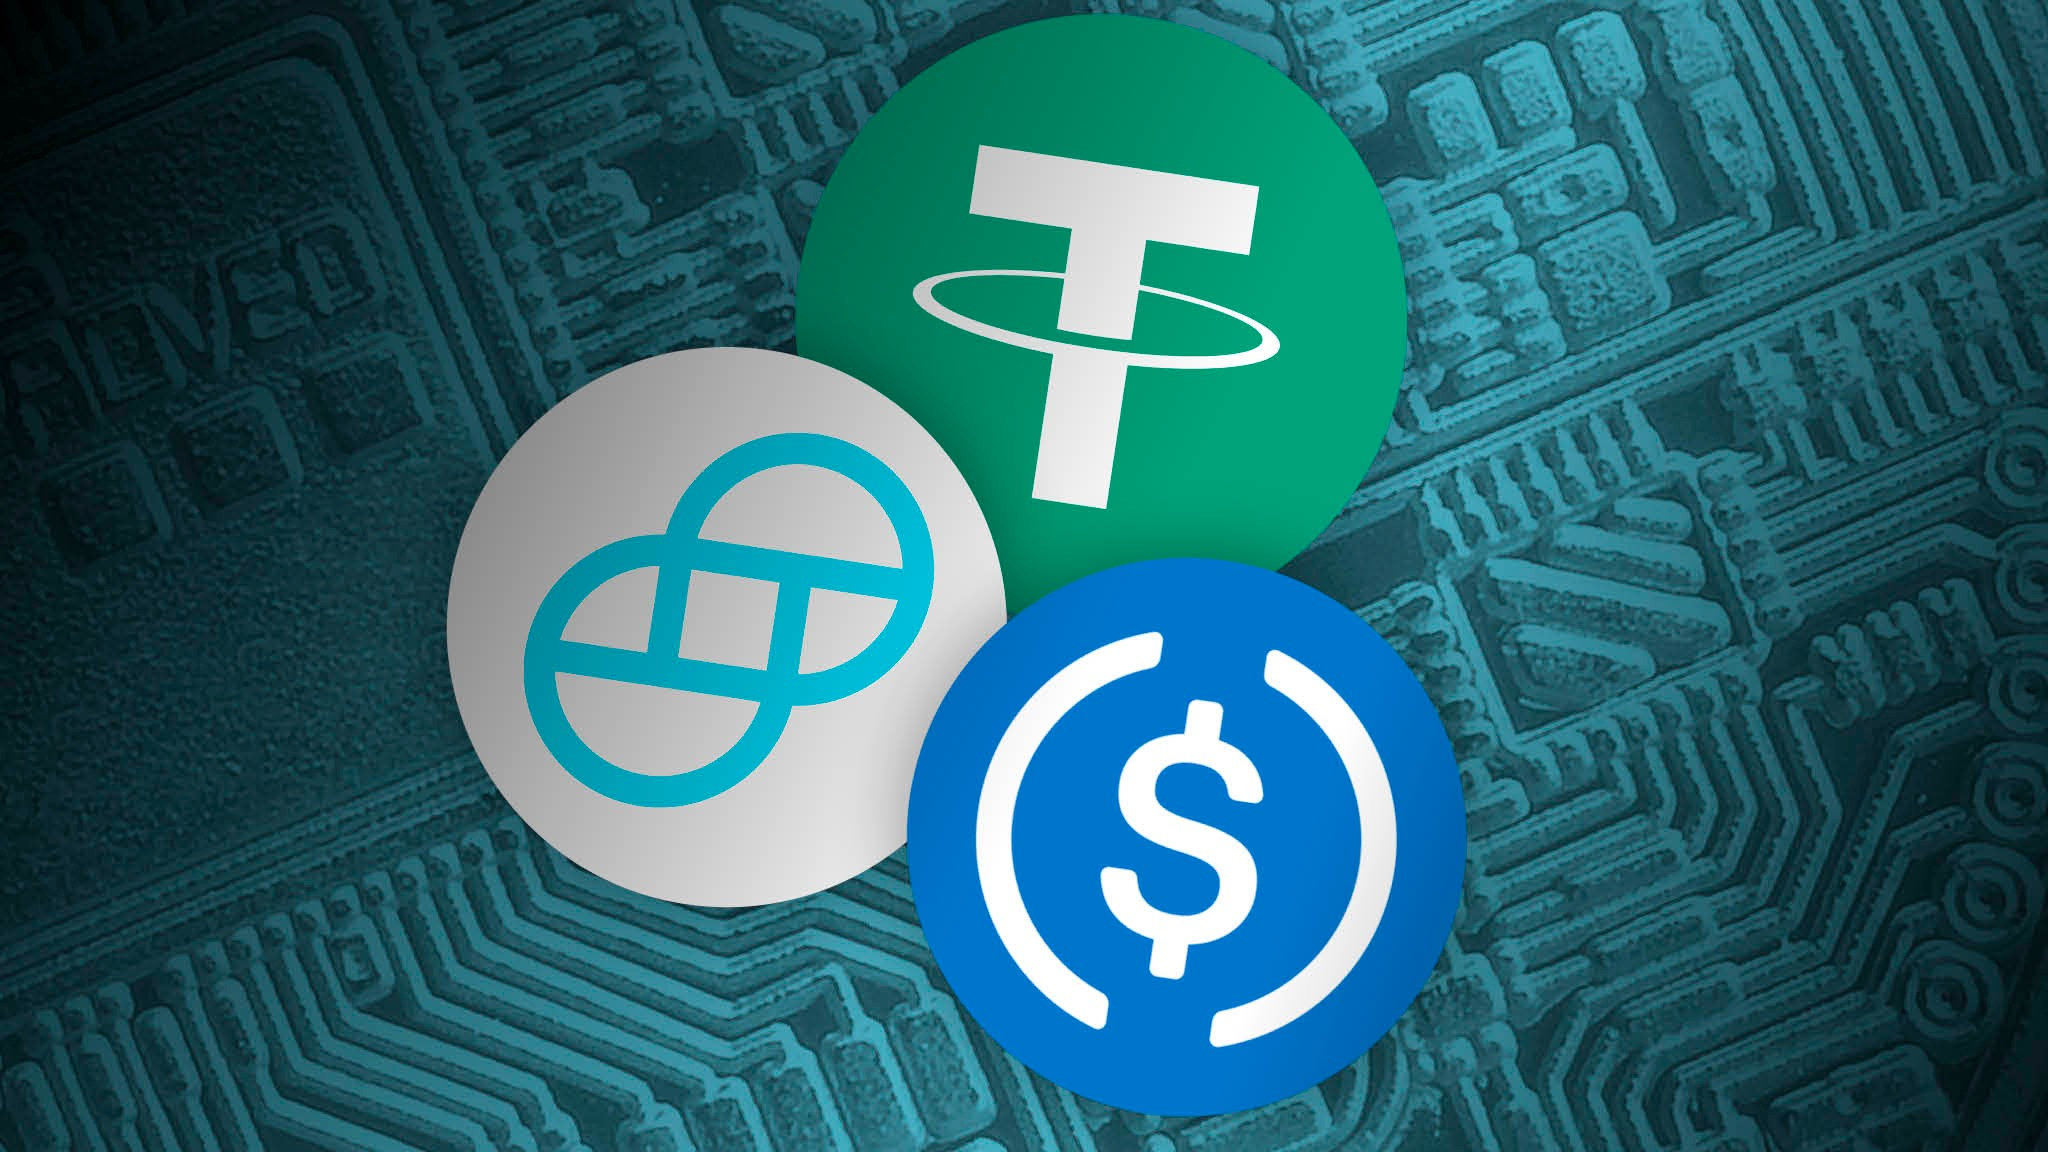 Stablecoin strife: crypto assets face calls for tougher oversight |  Financial Times